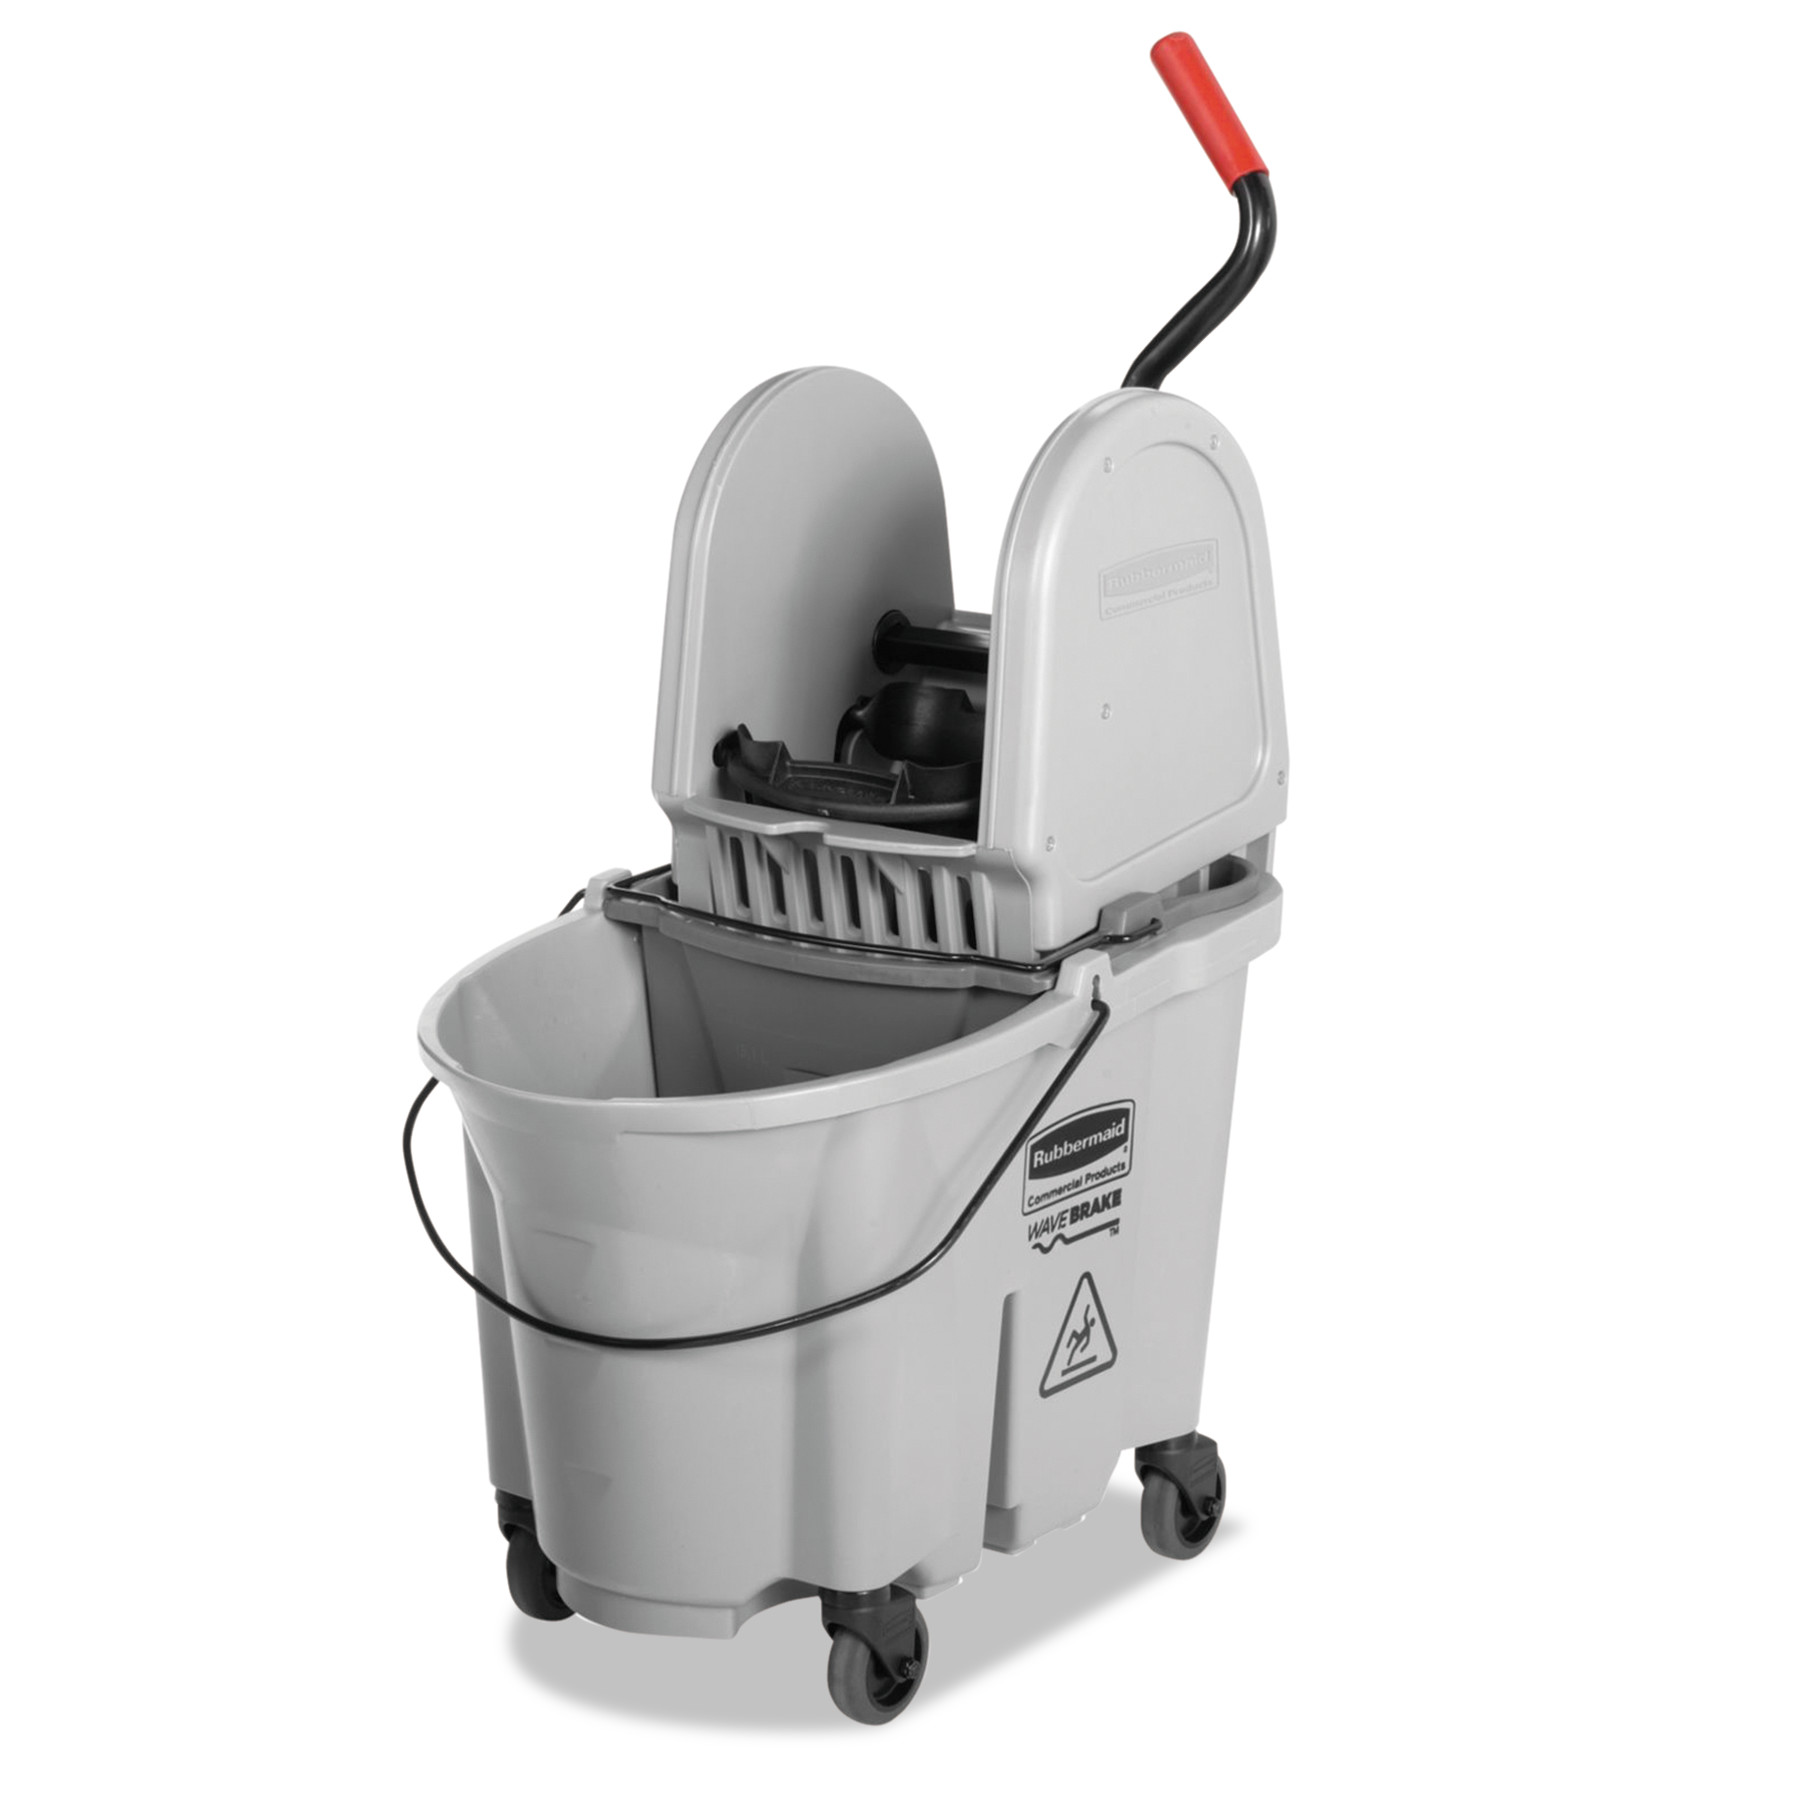 Rubbermaid Commercial Executive WaveBrake Down-Press Mop Bucket, Gray, 35 Quart